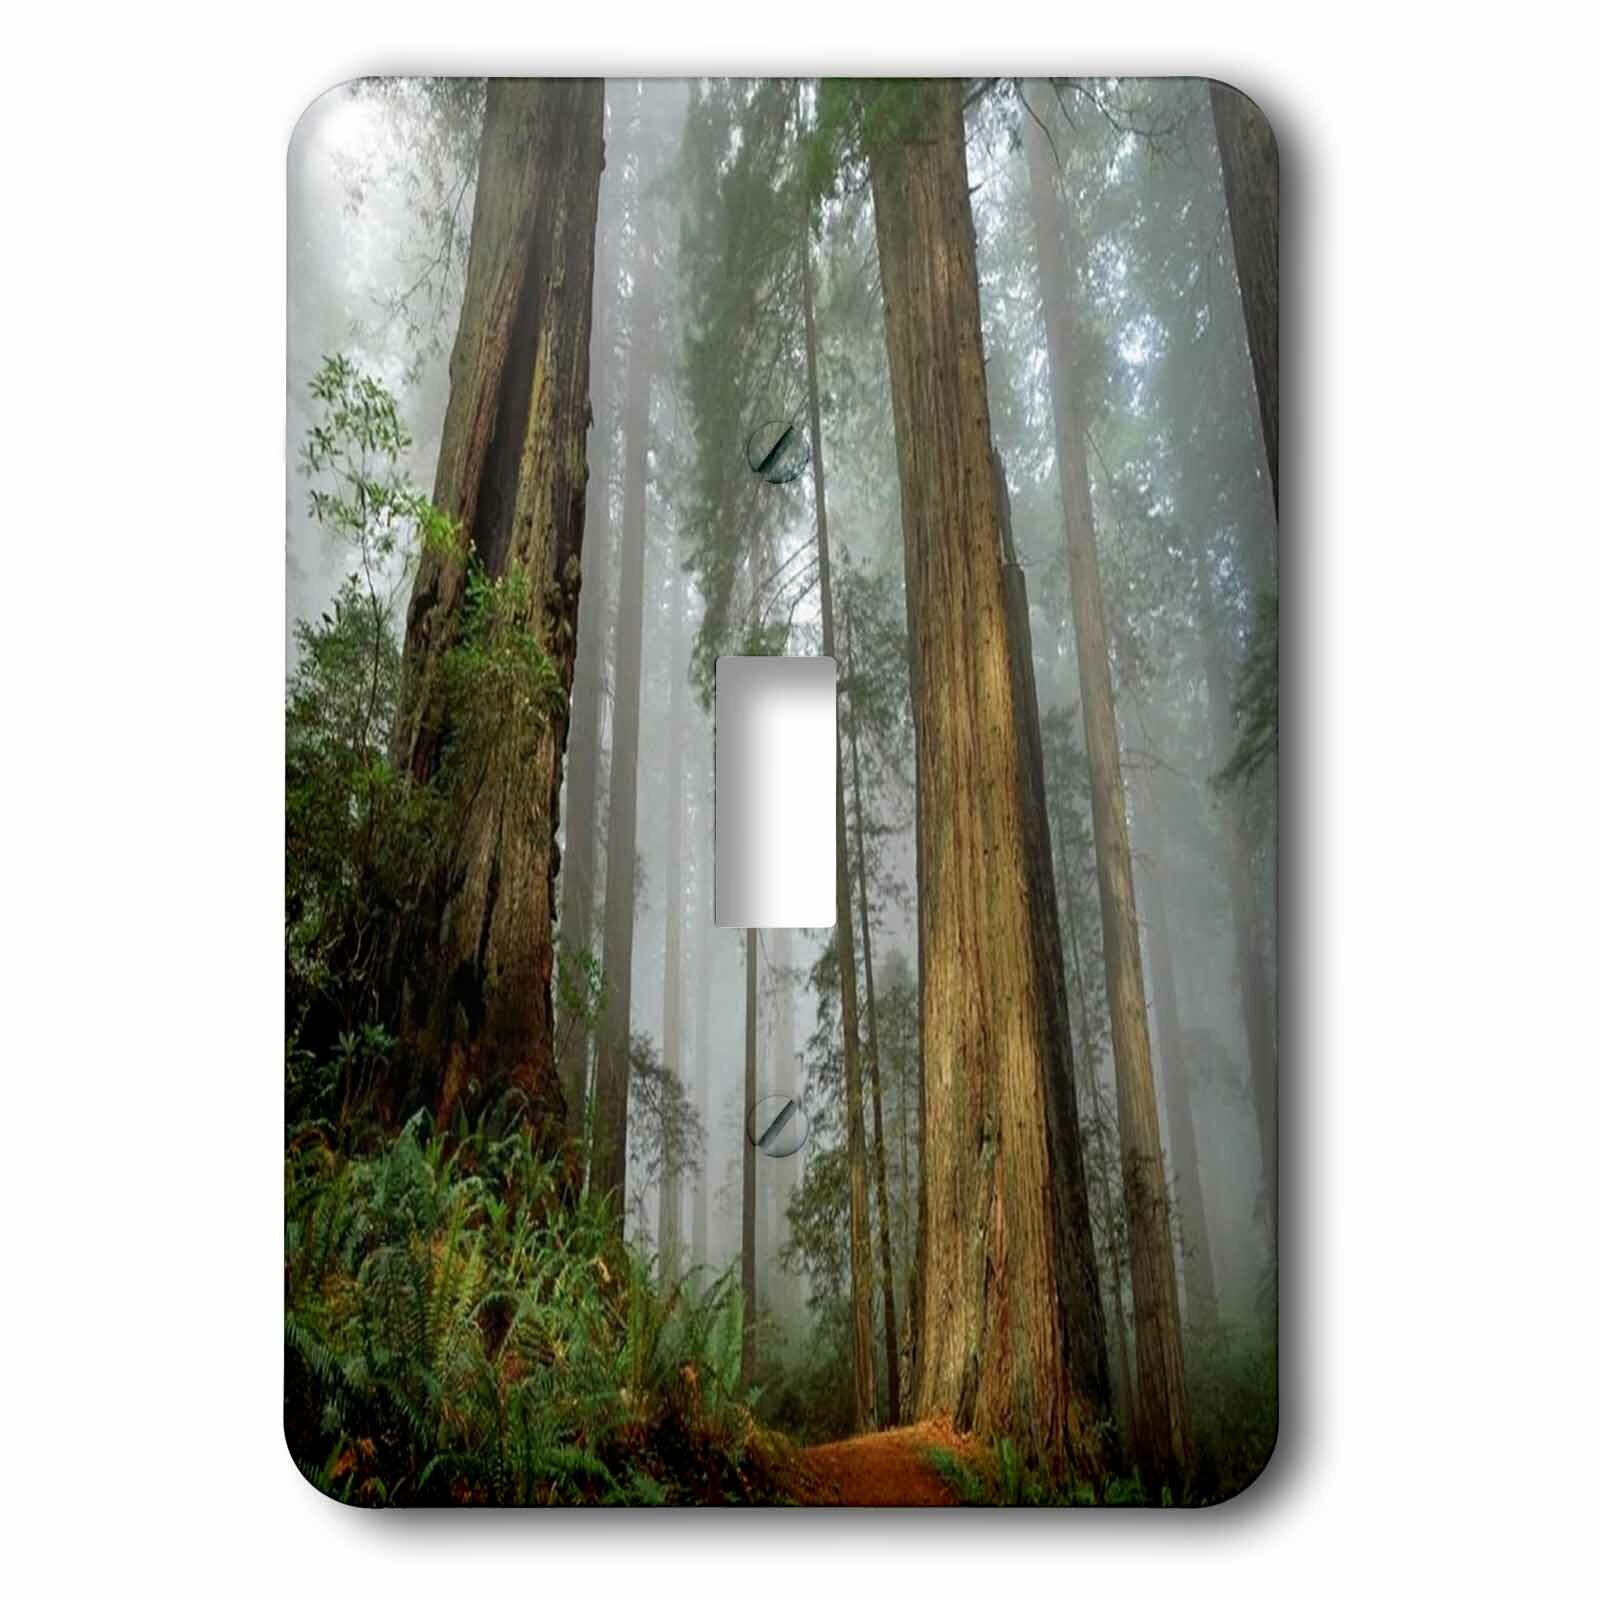 3drose Mist In The Forest 1 Gang Toggle Light Switch Wall Plate Wayfair